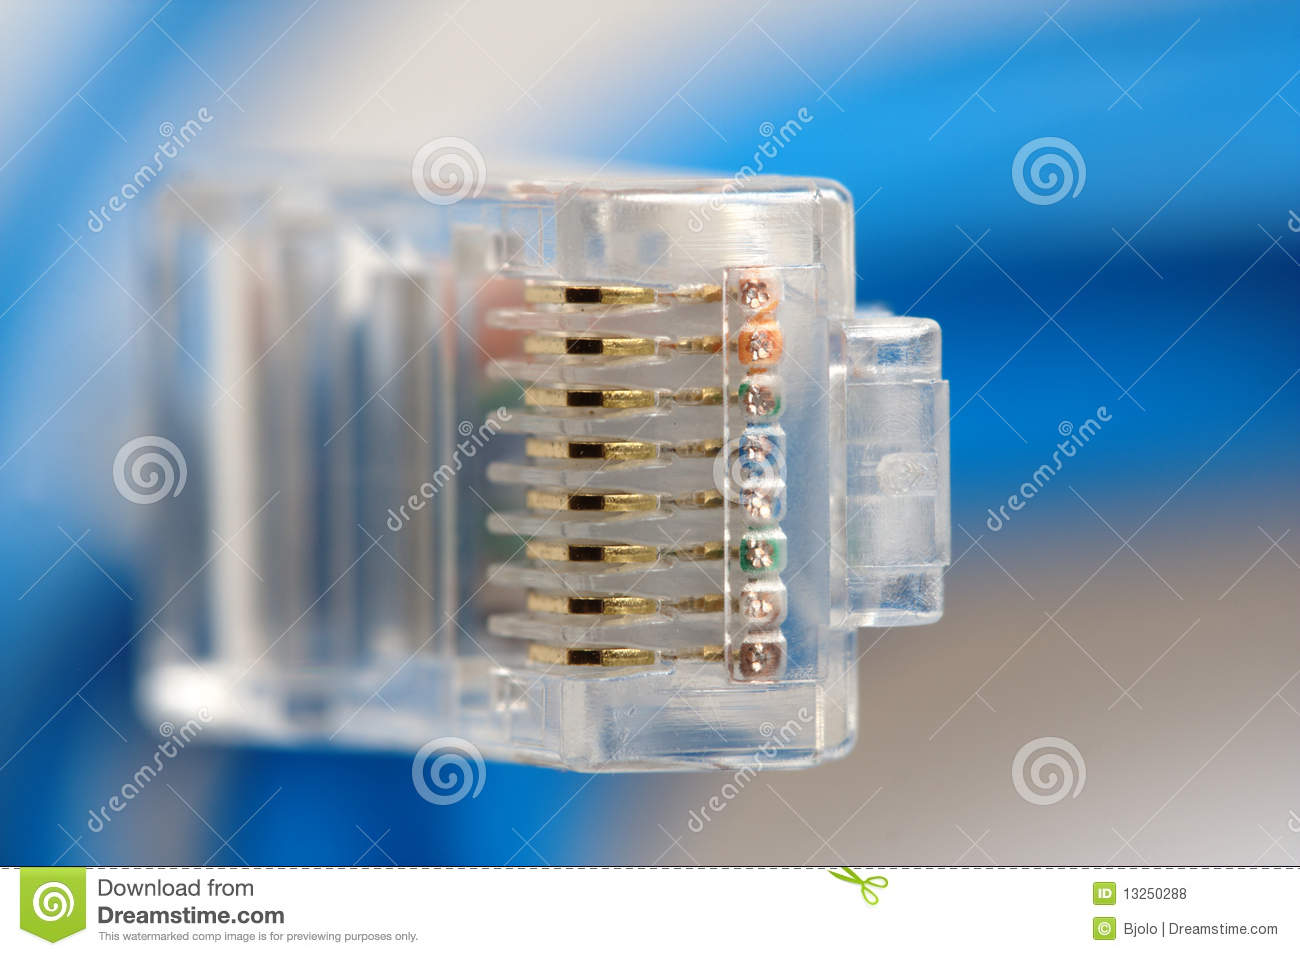 macro of rj45 network connection plug royalty free stock photos image 13250288. Black Bedroom Furniture Sets. Home Design Ideas